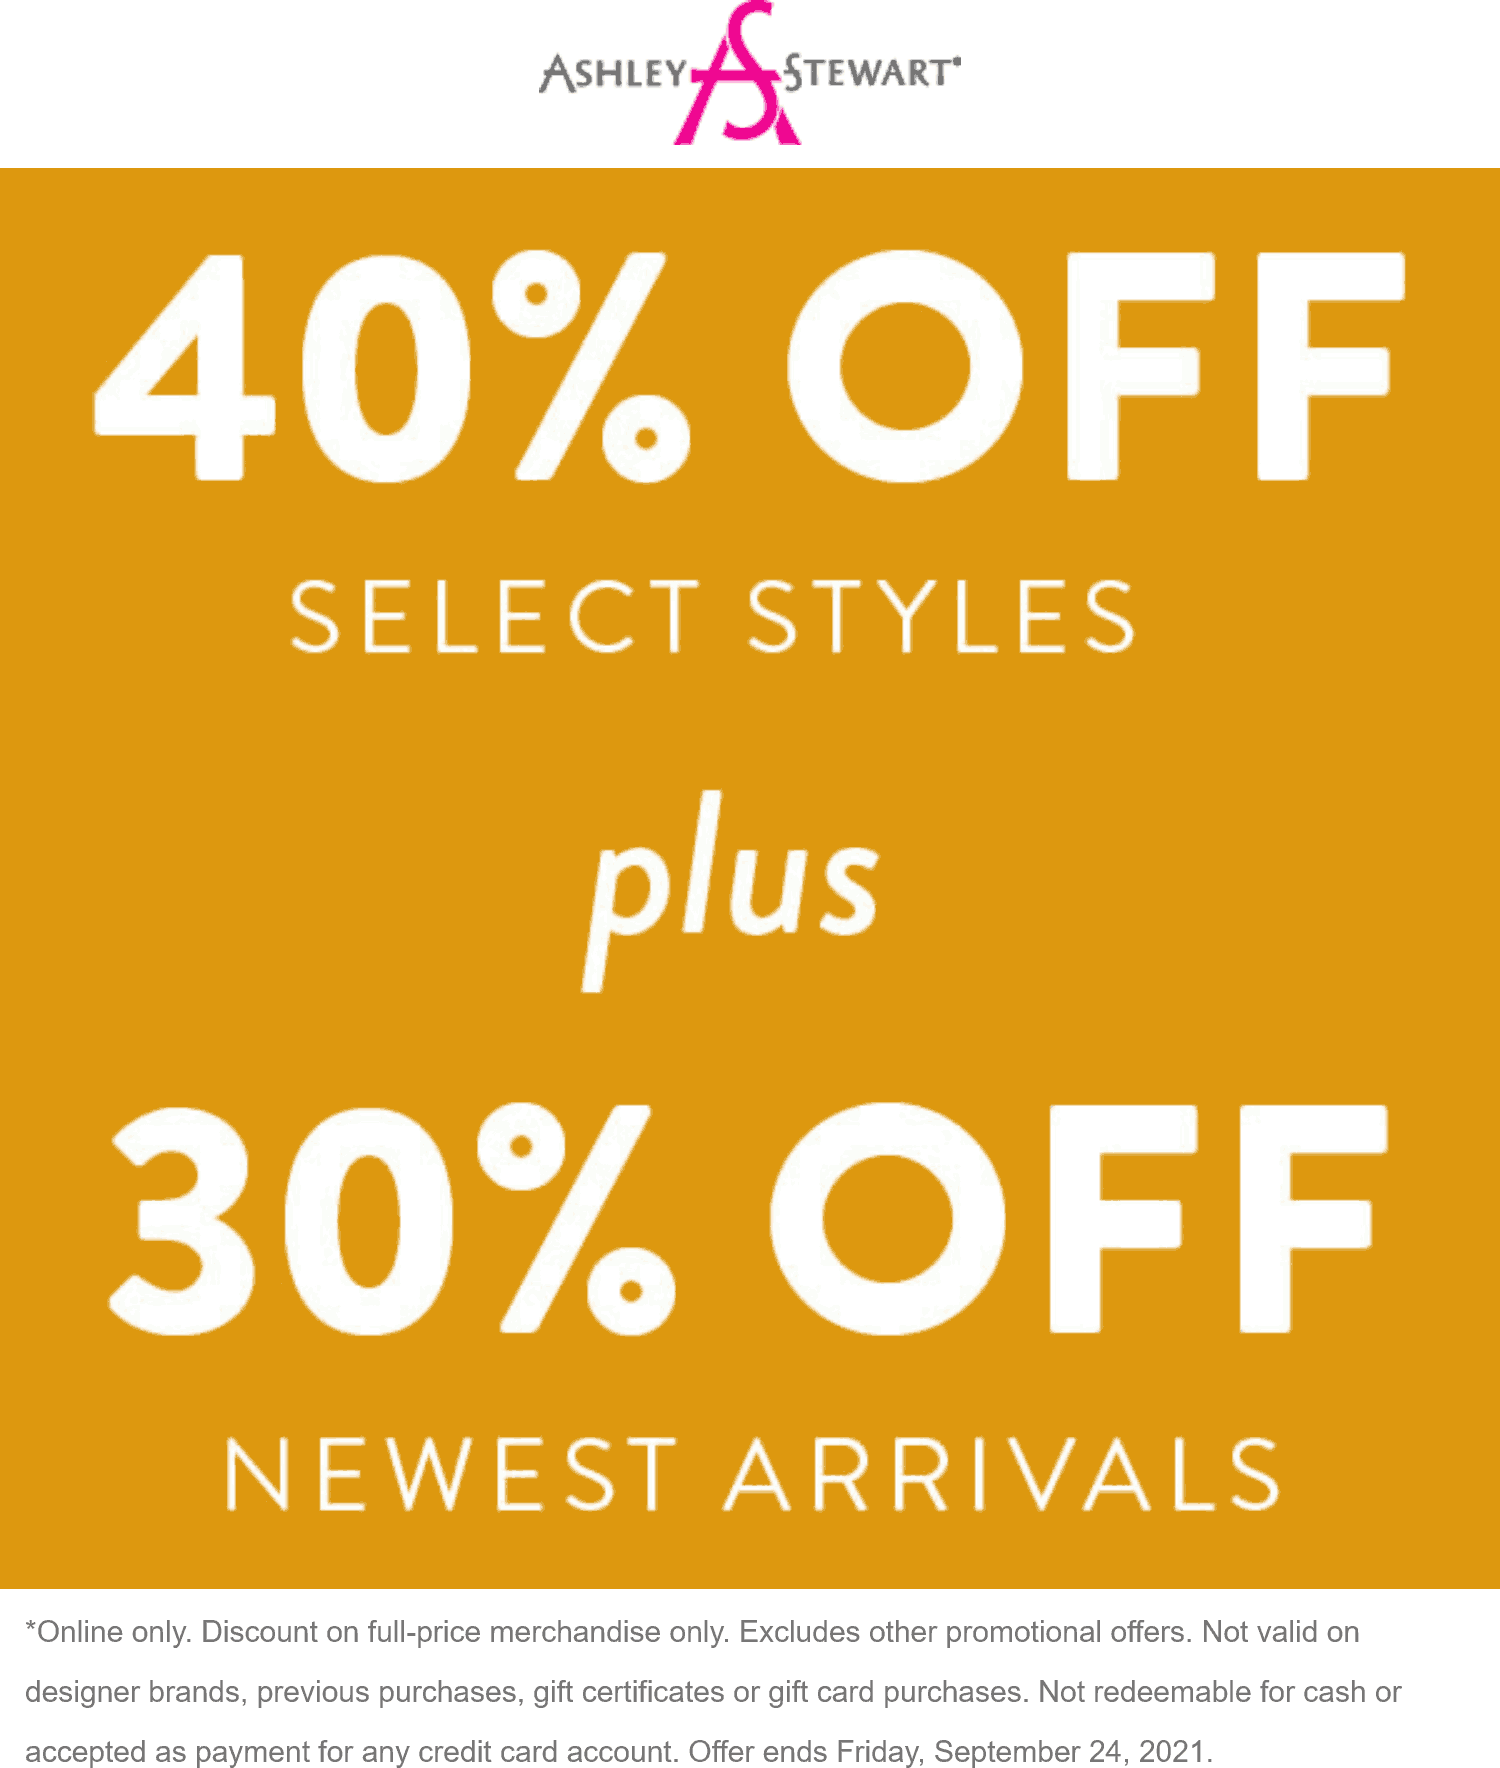 Ashley Stewart stores Coupon  30% off new arrivals online today at Ashley Stewart #ashleystewart